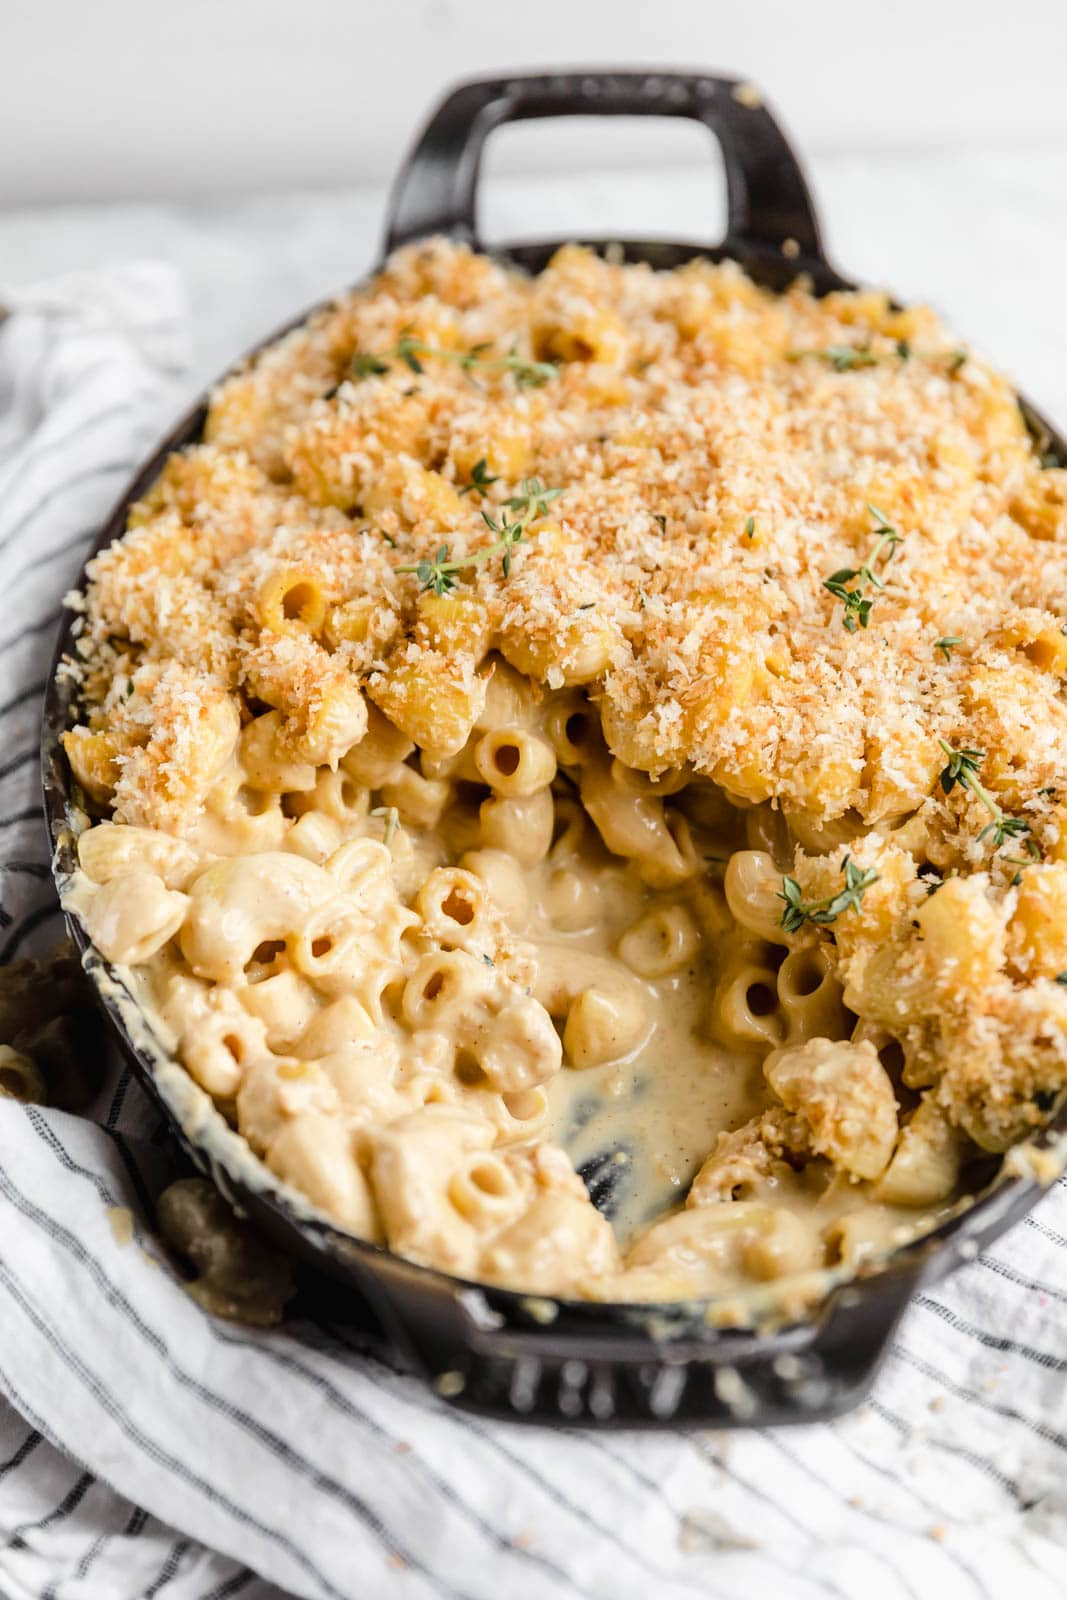 An epic Vegan Mac and Cheese that will have even the most discerning meat eaters will go crazy for! Made with a creamy cashew cheese sauce.